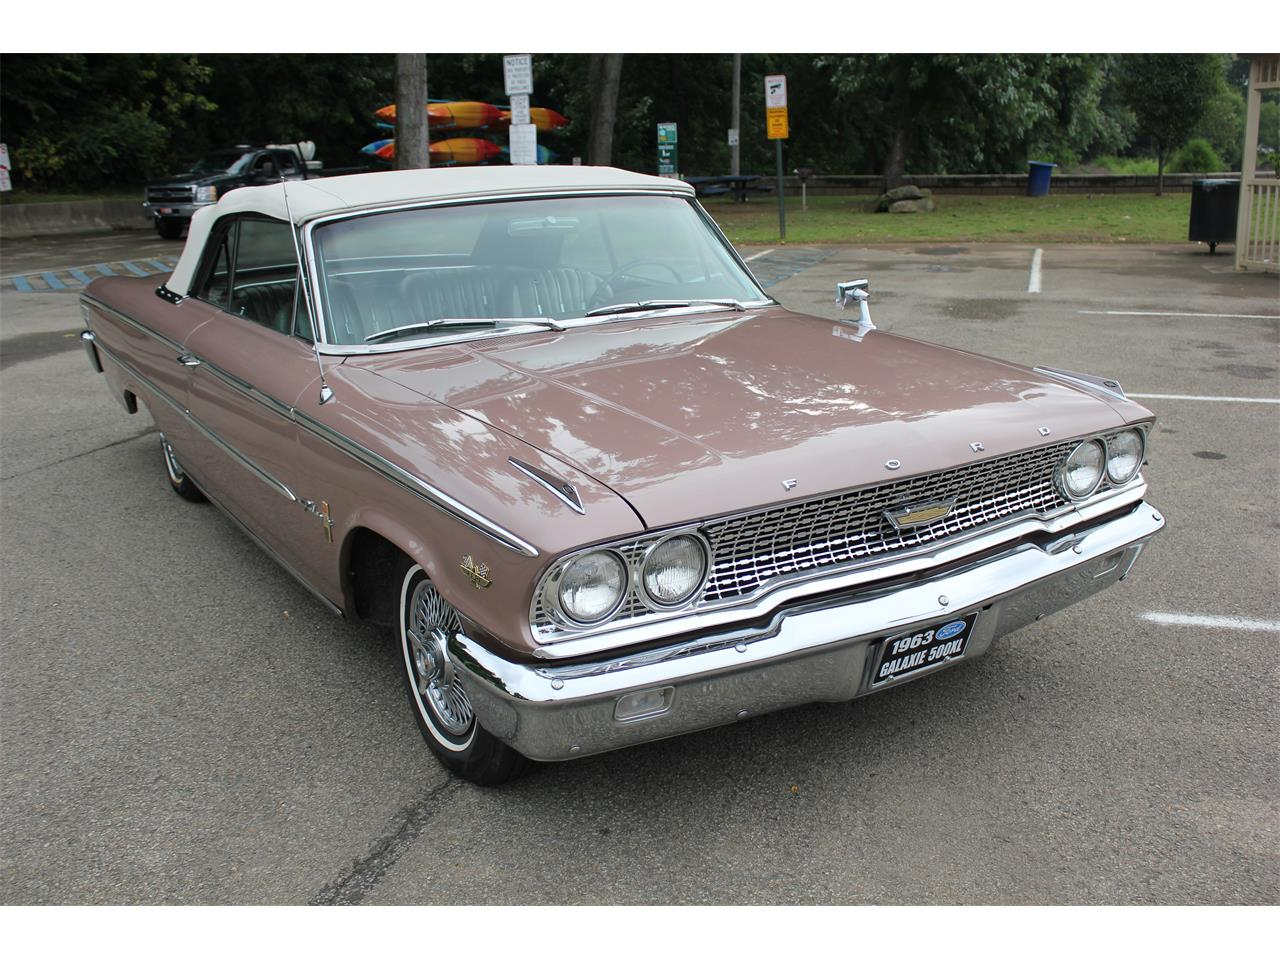 Large Picture of Classic '63 Ford Galaxie 500 XL located in Sharpsburg Pennsylvania - $34,500.00 Offered by Fort Pitt Classic Cars - ORPQ